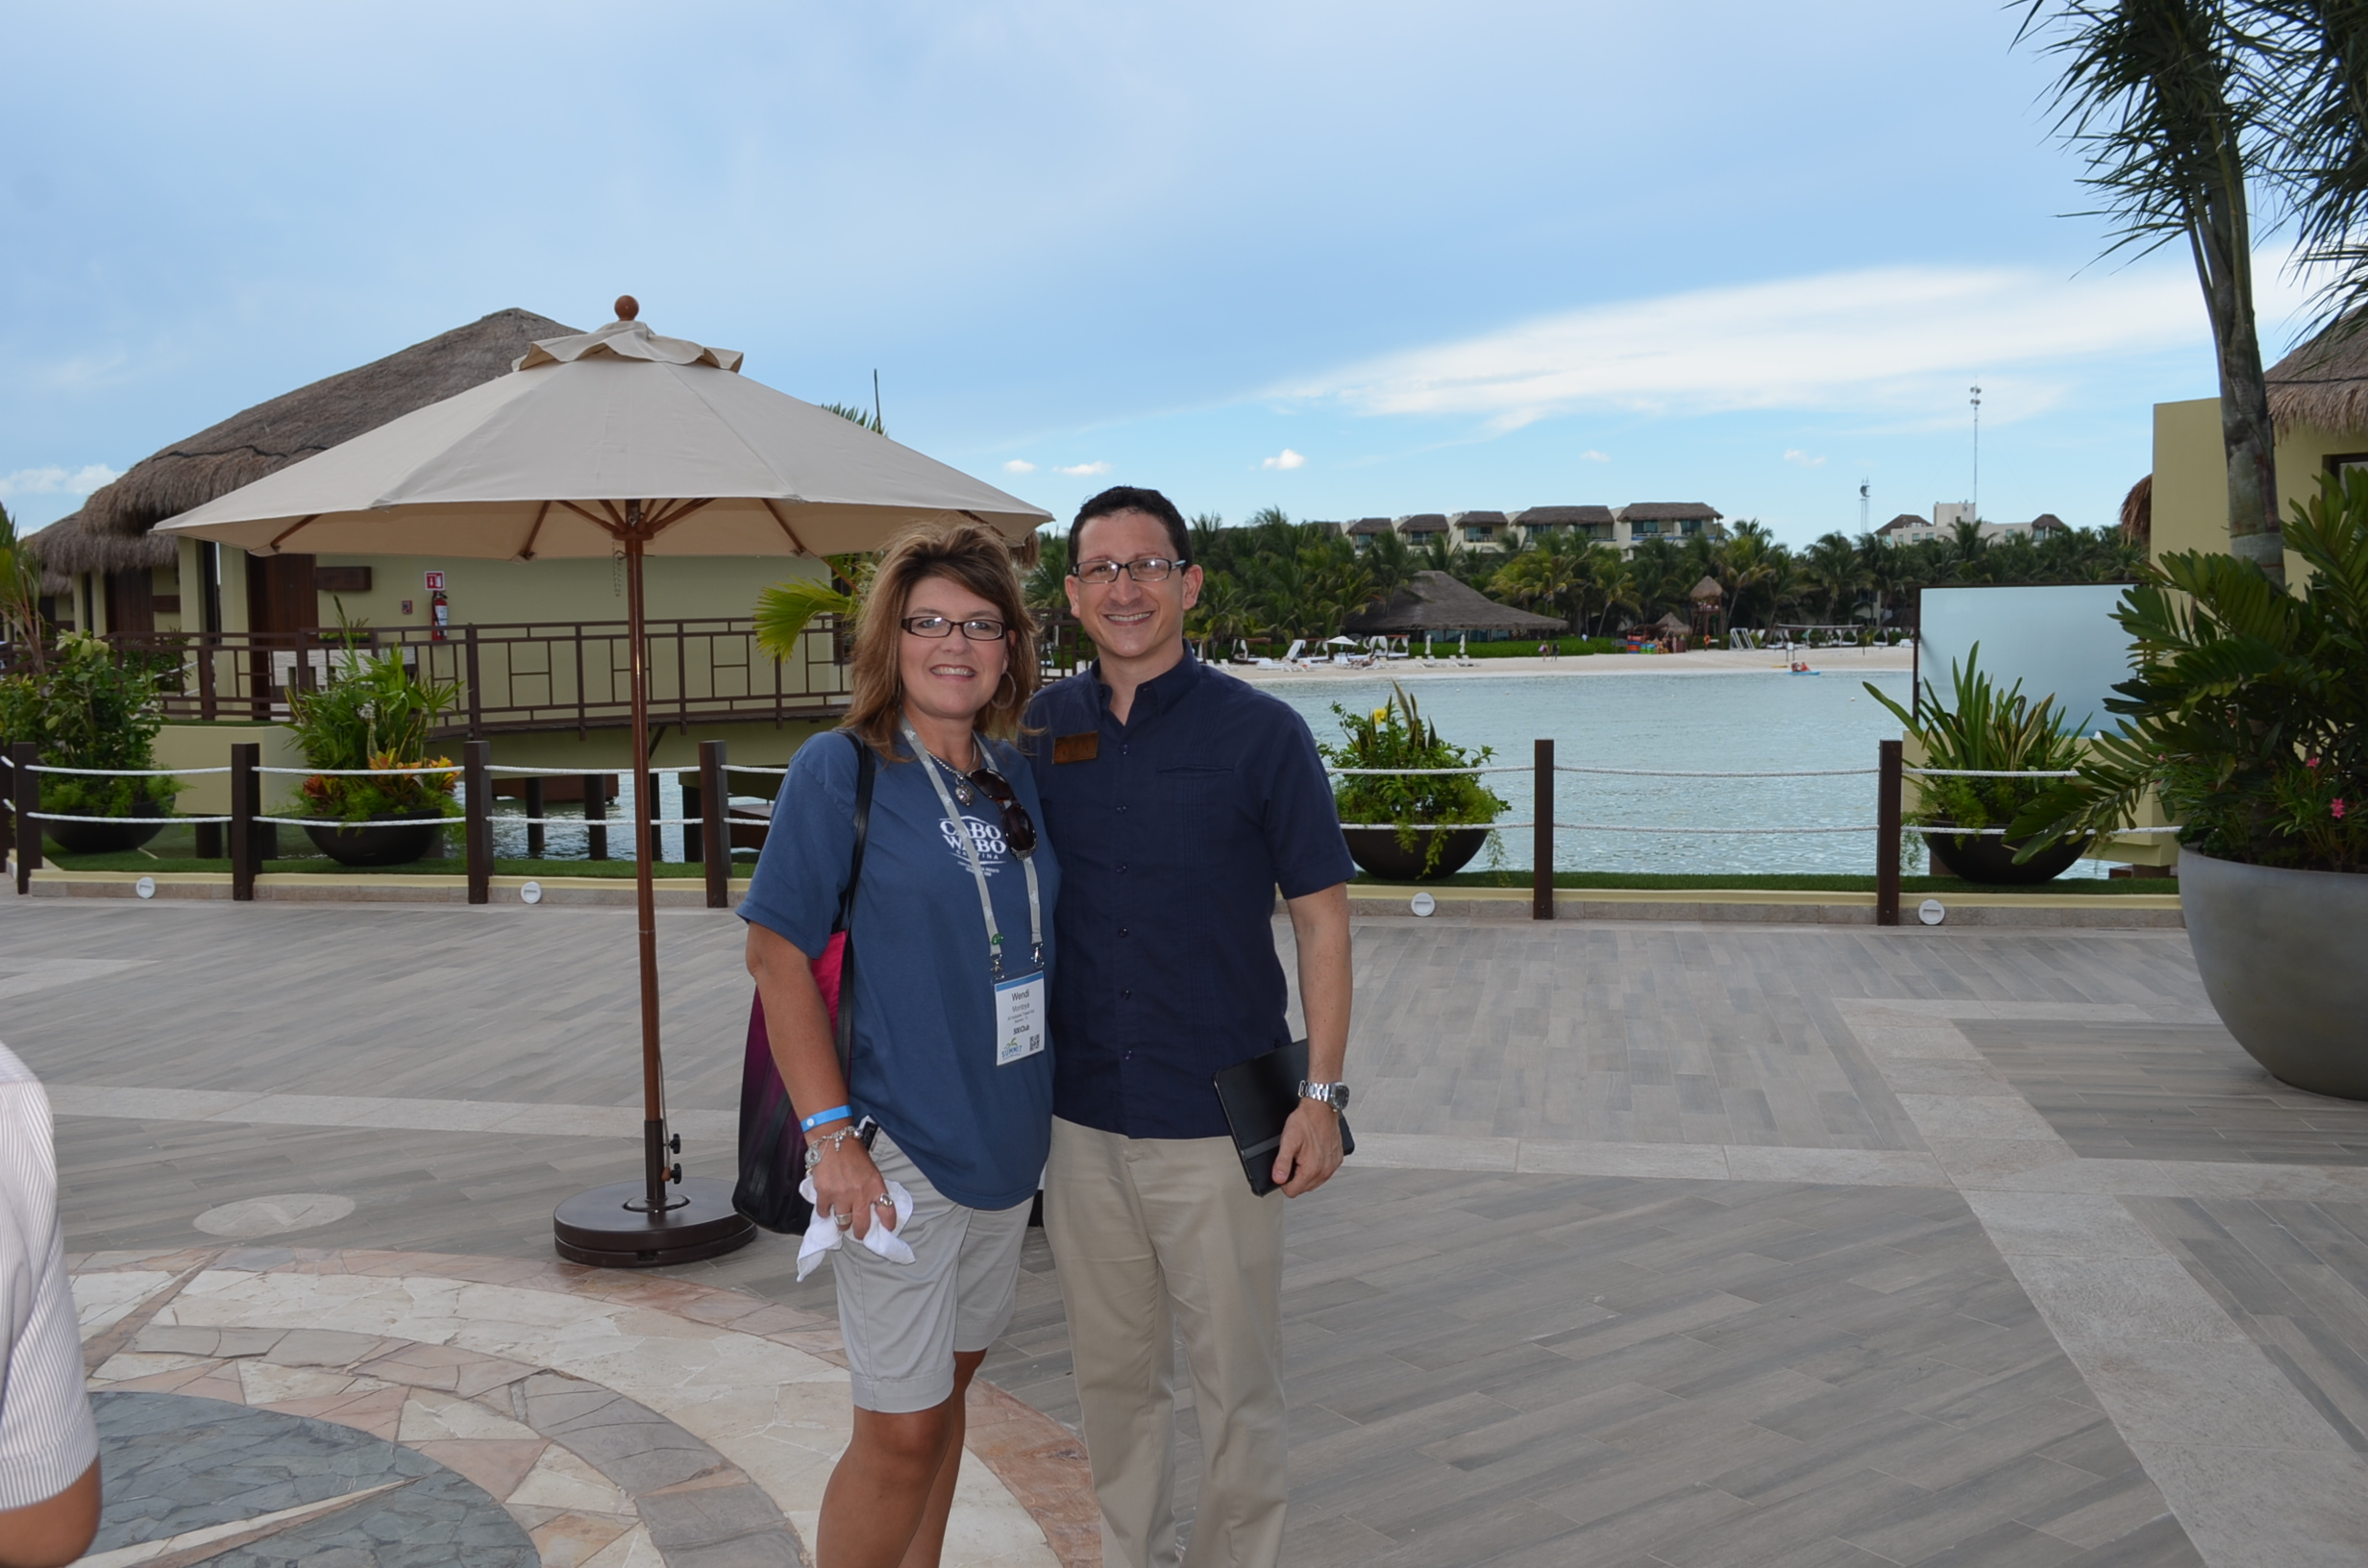 On Site of the New Over the Water Palafitos in Mexico